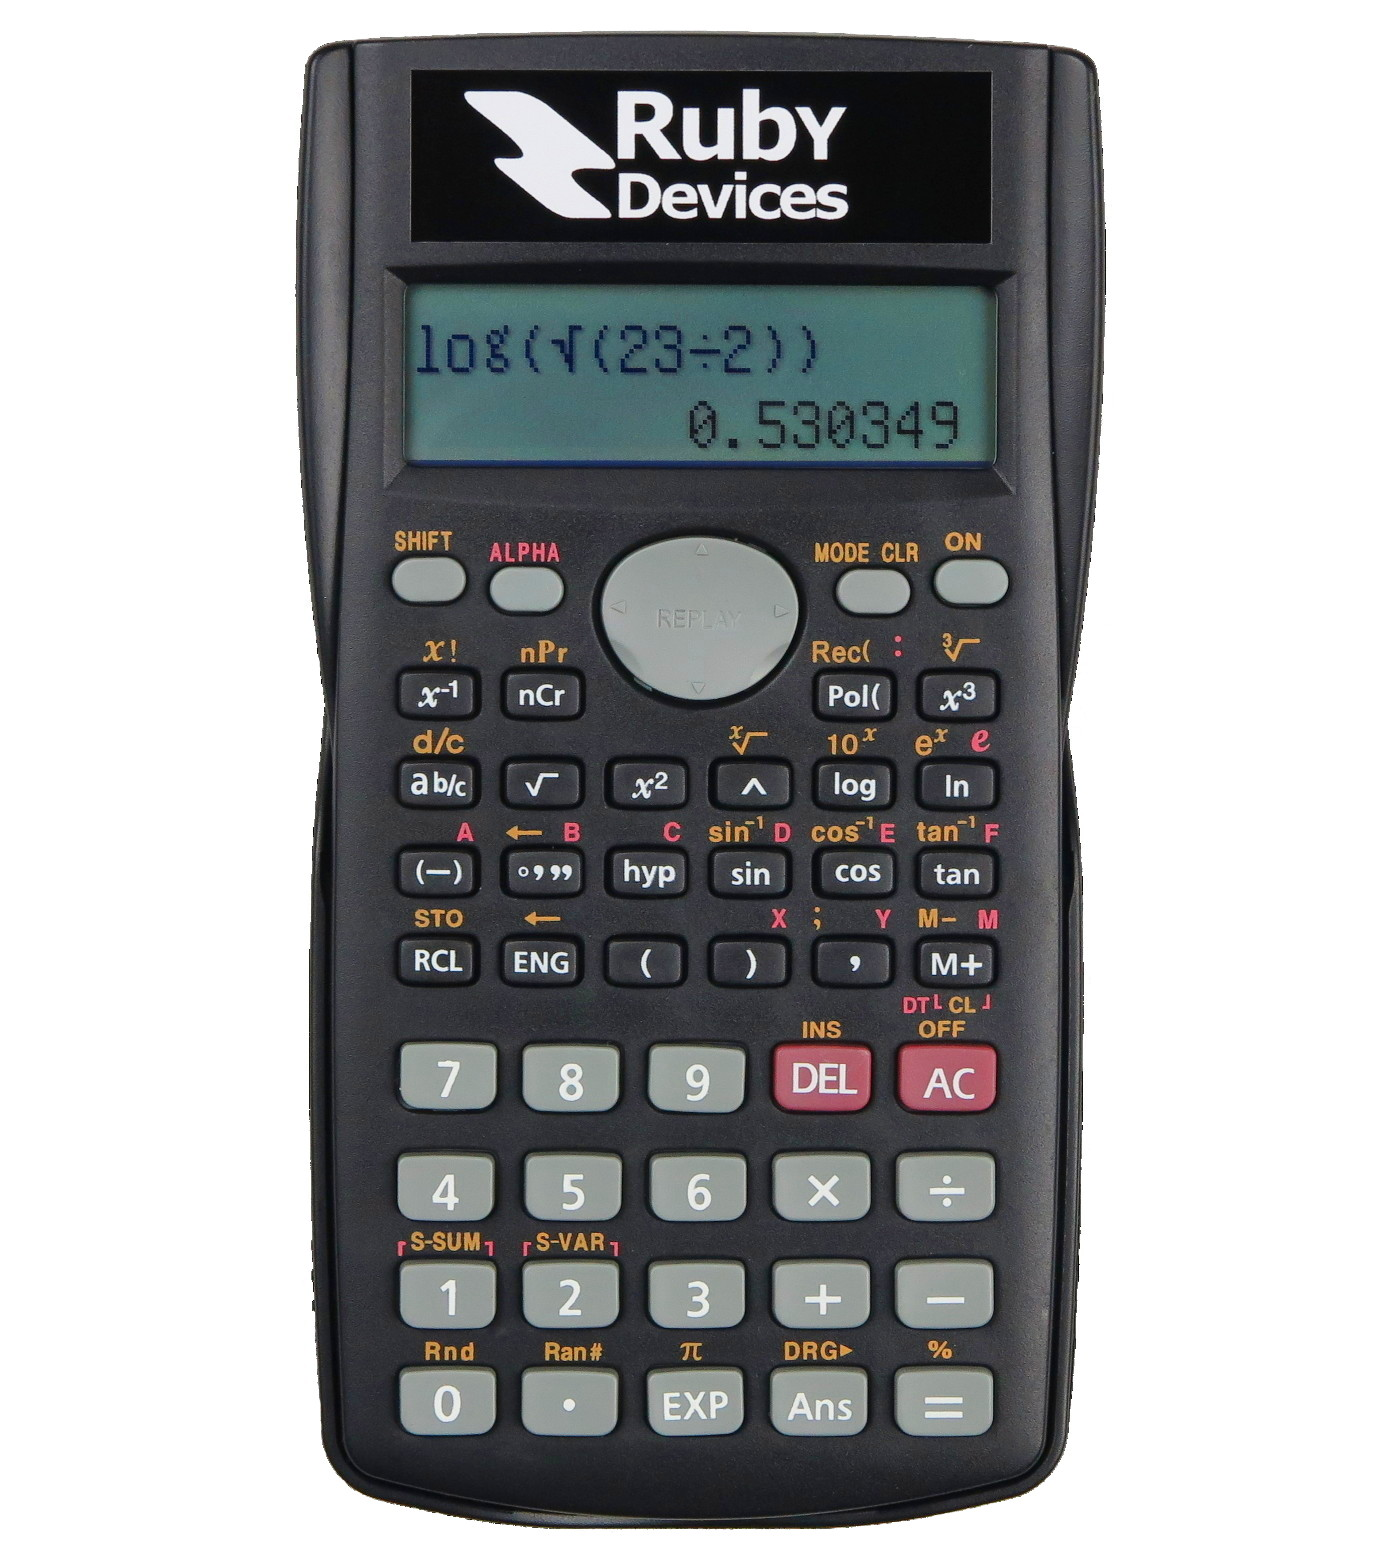 Ruby Device in Calculator Mode